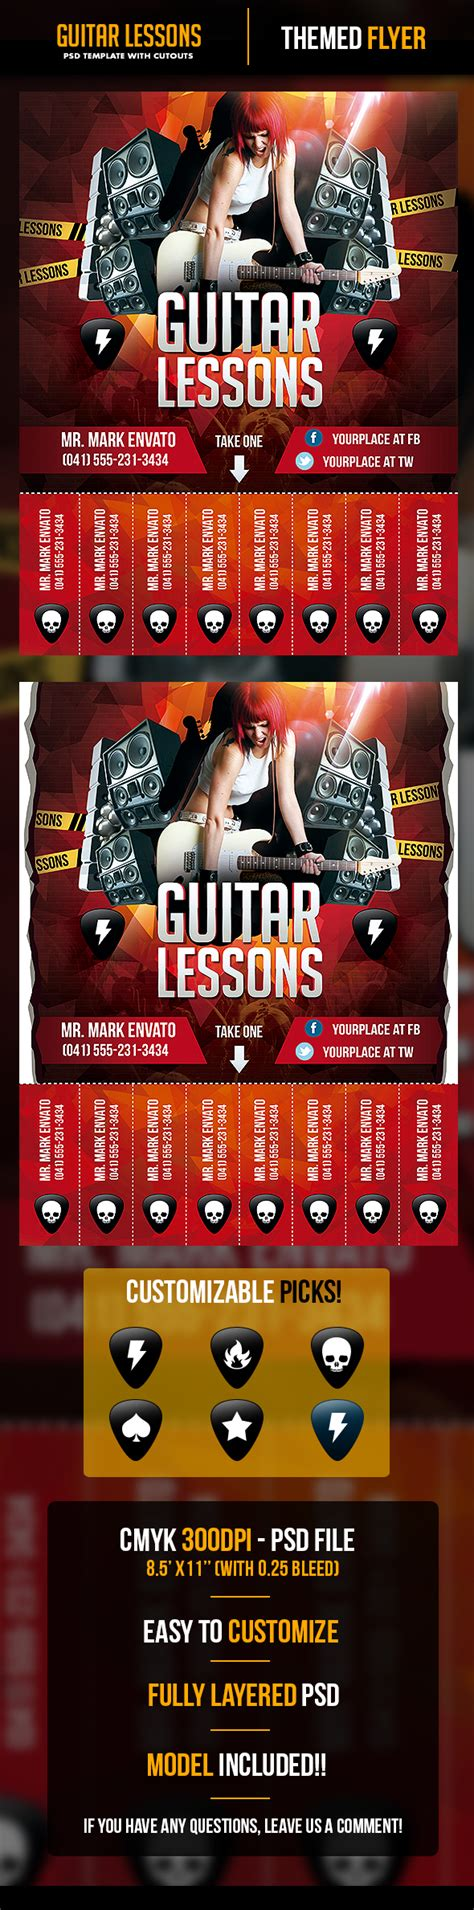 Guitar Lessons Flyer Template With Cutouts By Odindesign On Deviantart Guitar Lesson Flyer Template